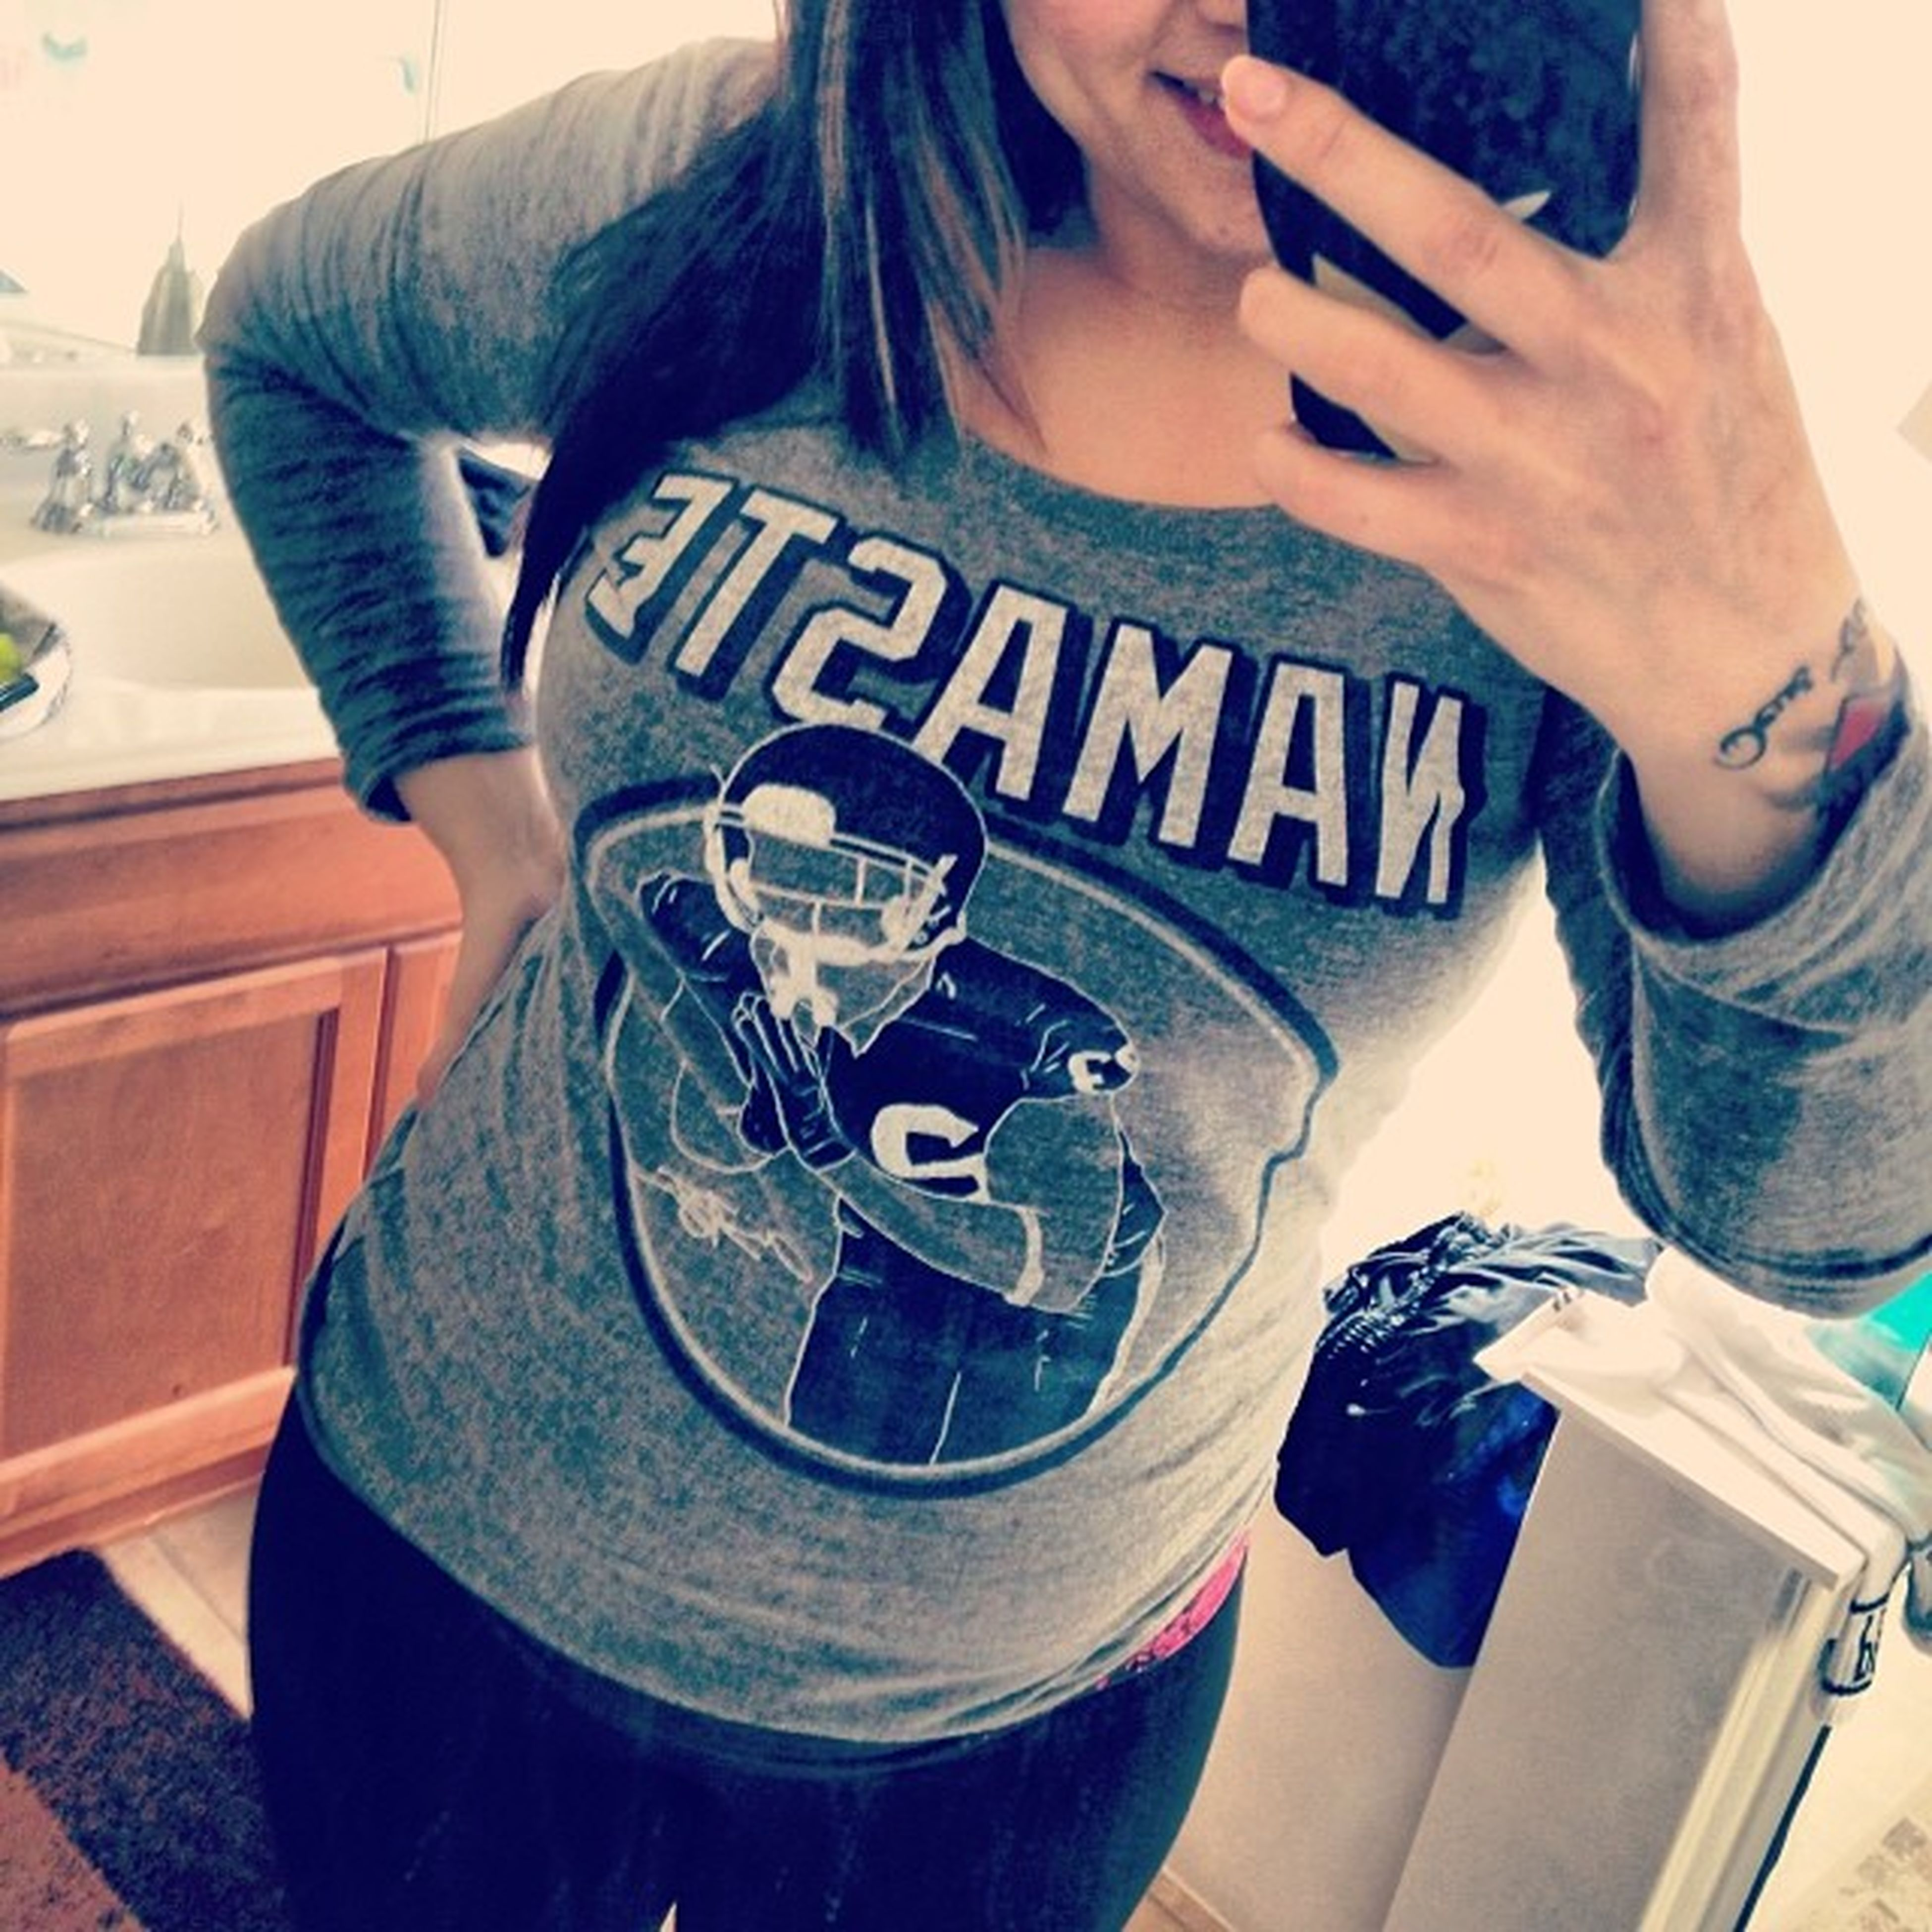 Has become my favorite pregnancy shirt for obvious reasons Namaste Arianfoster Thatlightwithinher Giggigty babymamadrama